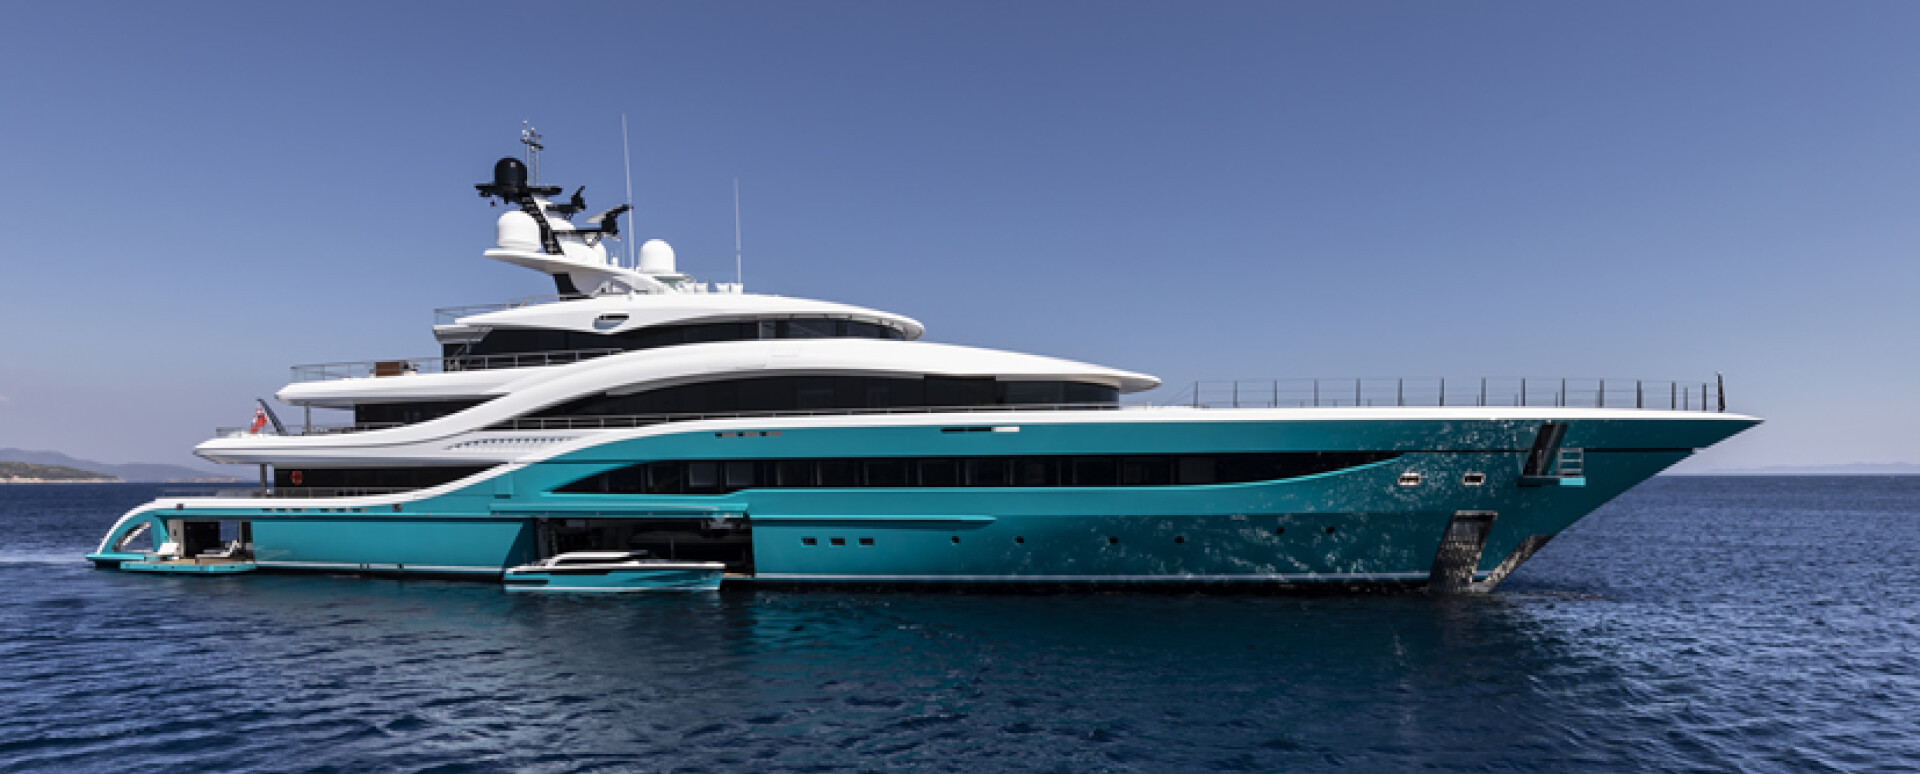 New CEO for Turquoise Yachts